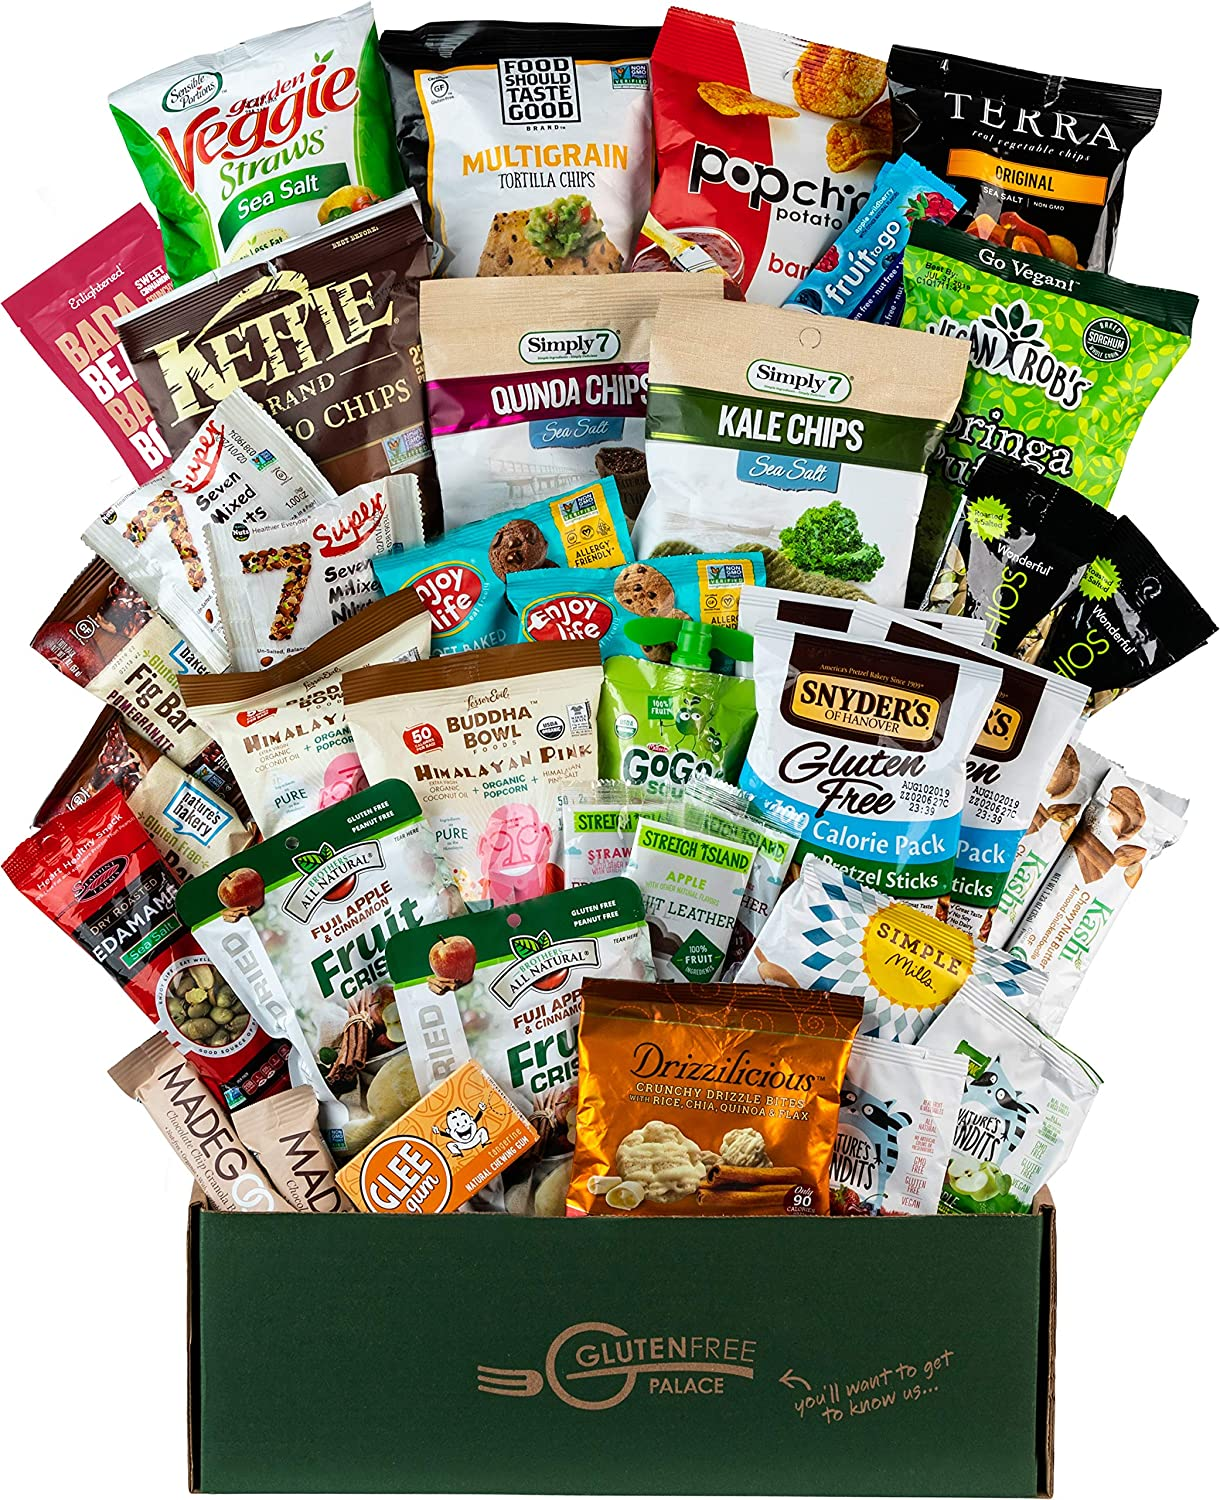 Deluxe Snacks Care Package - GLUTEN-FREE, DAIRY-FREE, Kosher Cookies, Bars, Chips, Puffs, Fruit & Nuts. [40 Count] Holiday Gift Baskets | Healthy Snack Box | College Care Package by SNACK ATTACK